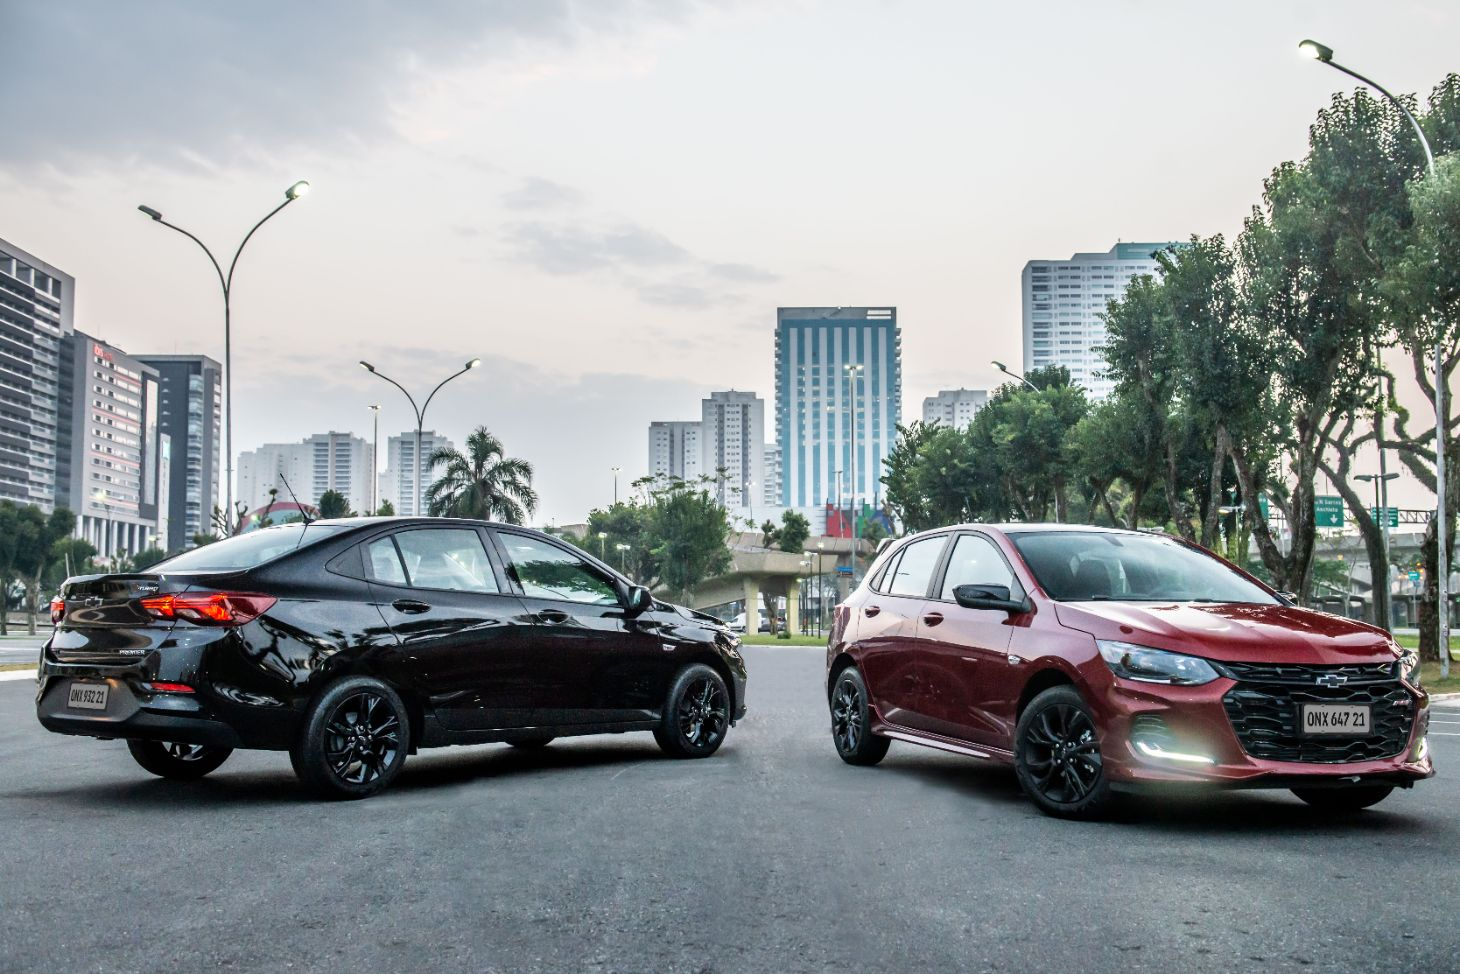 chevrolet onix plus midnight e onix rs vermelho estacionados